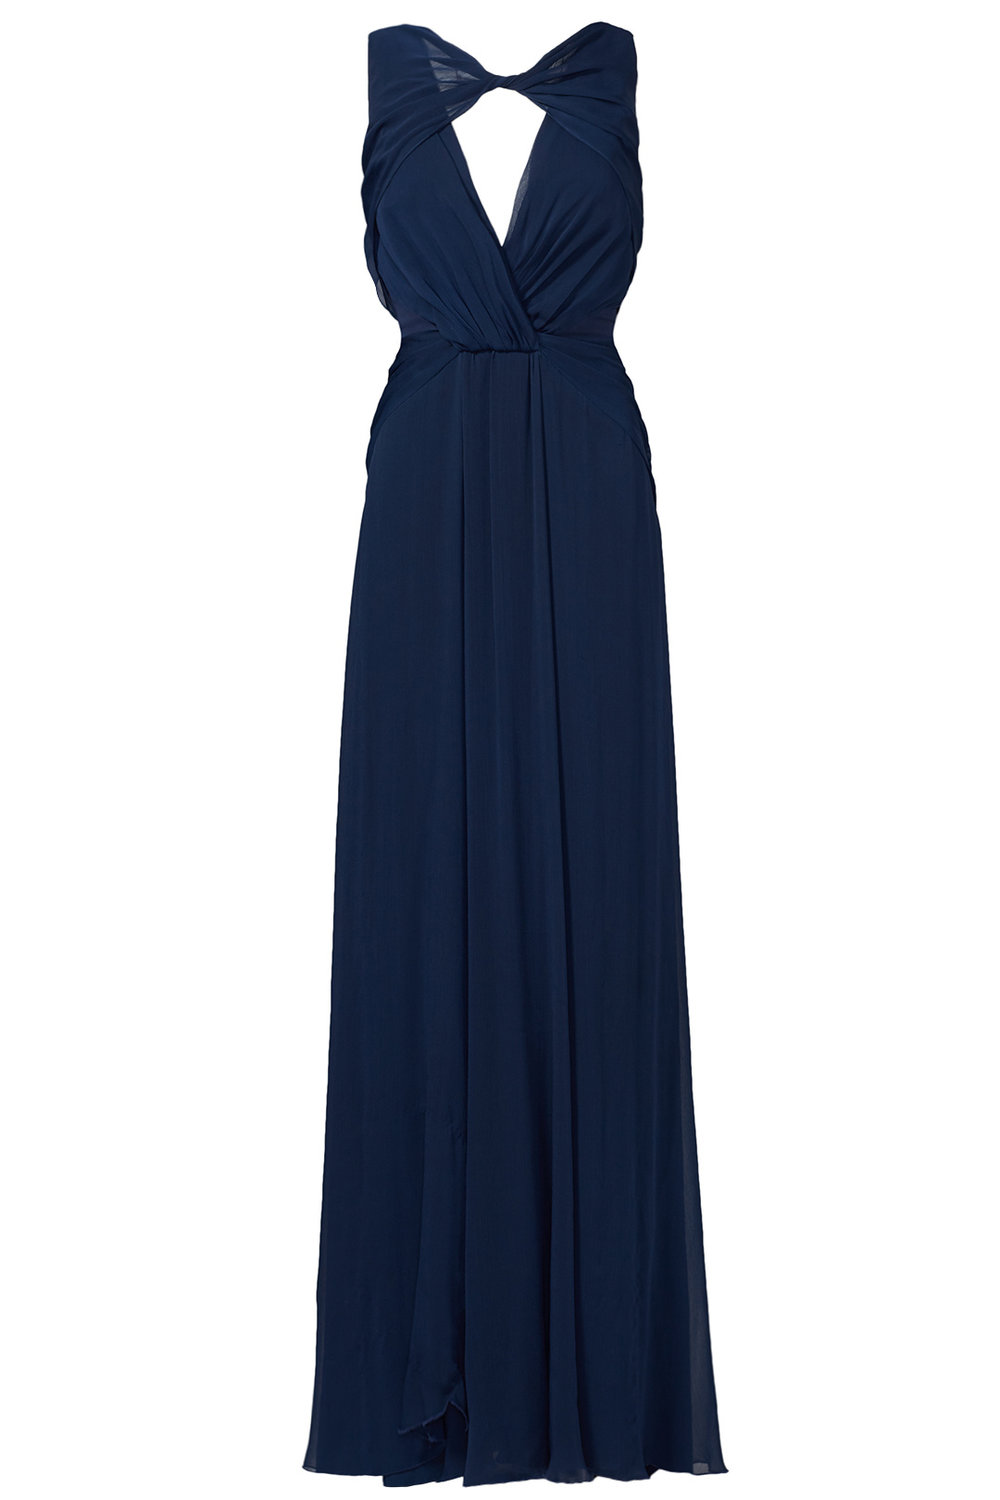 badgley mischka navy petunia gown - $95.00-$115.00